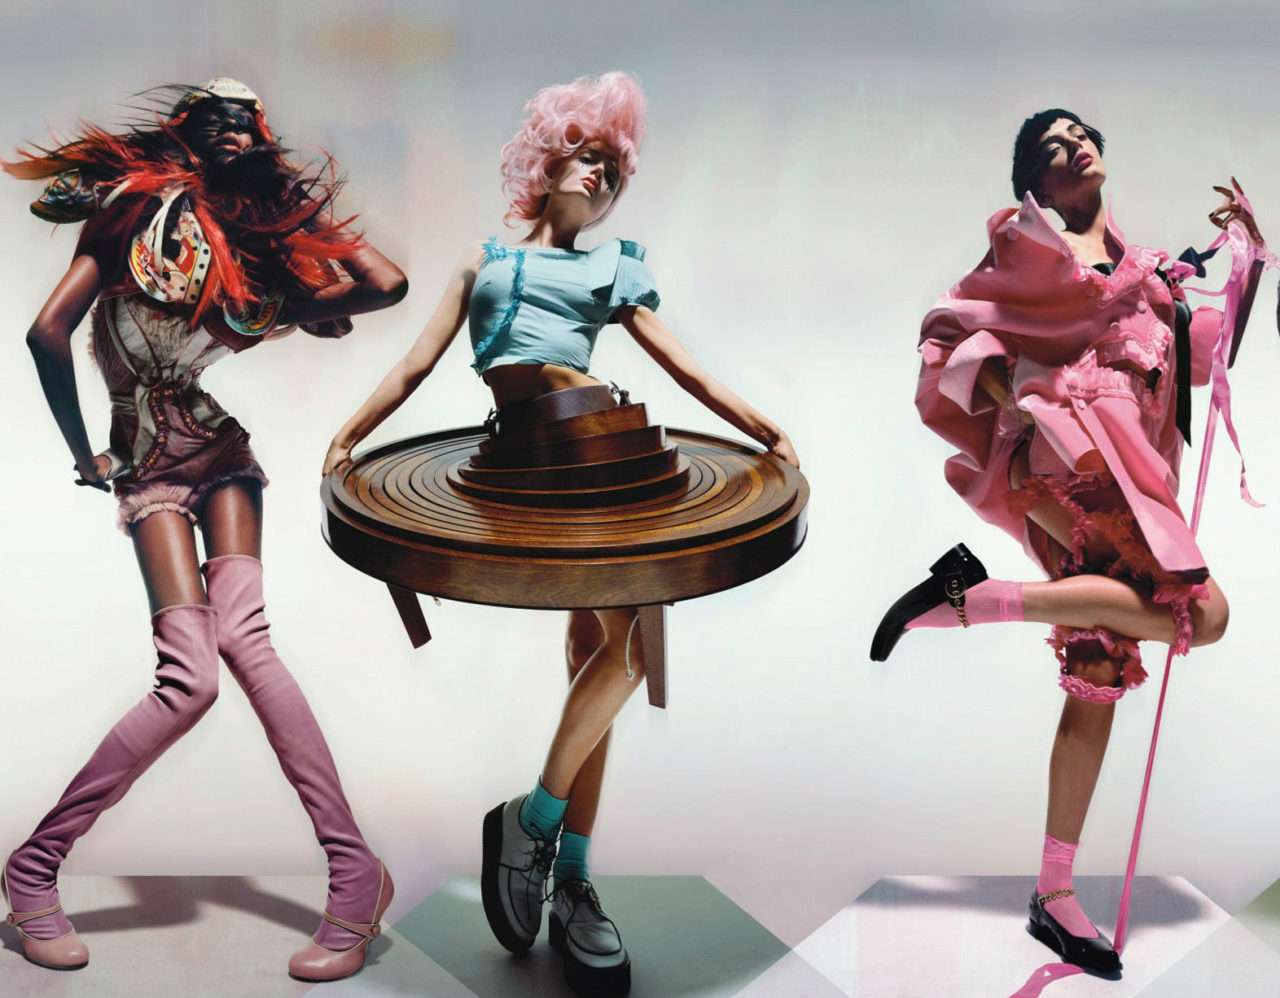 Nick-Knight-Dec-2008-2-vogue-24feb14-b